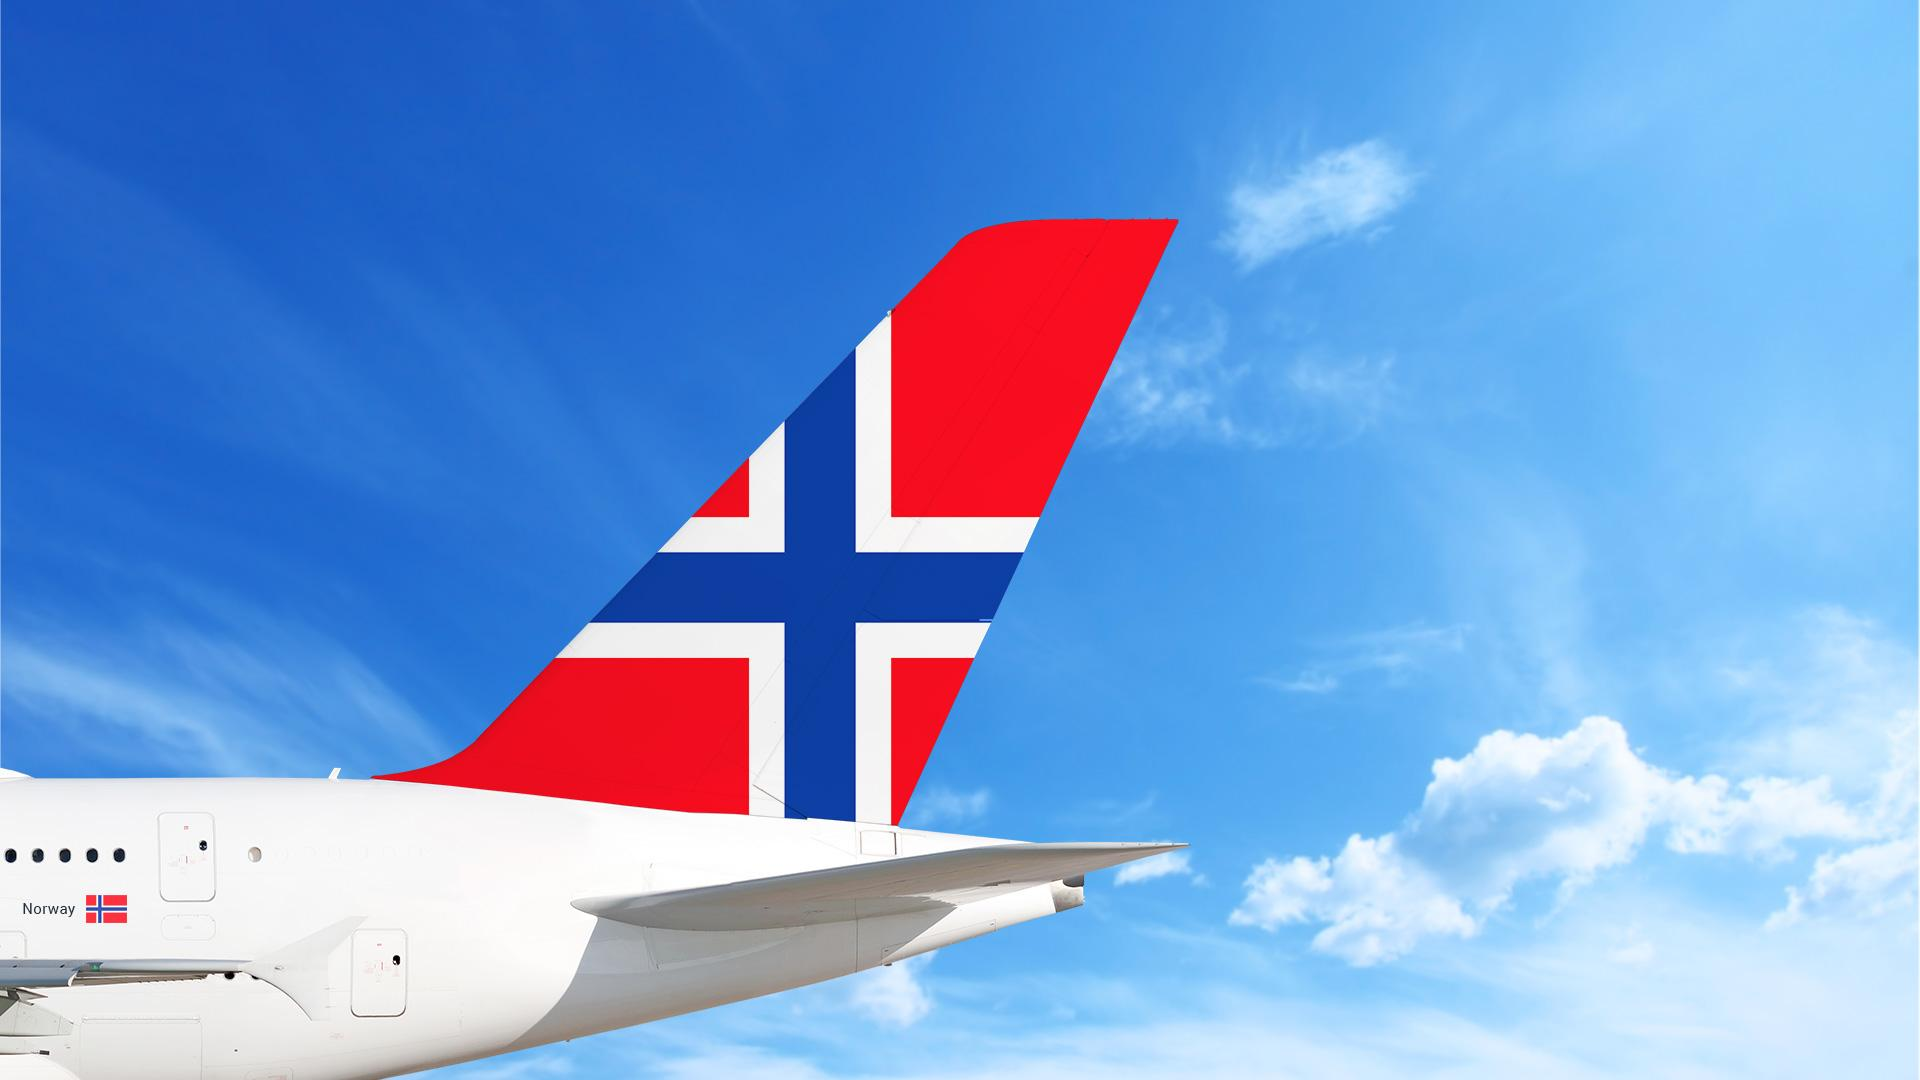 Airplane with Norway flag on the tail.